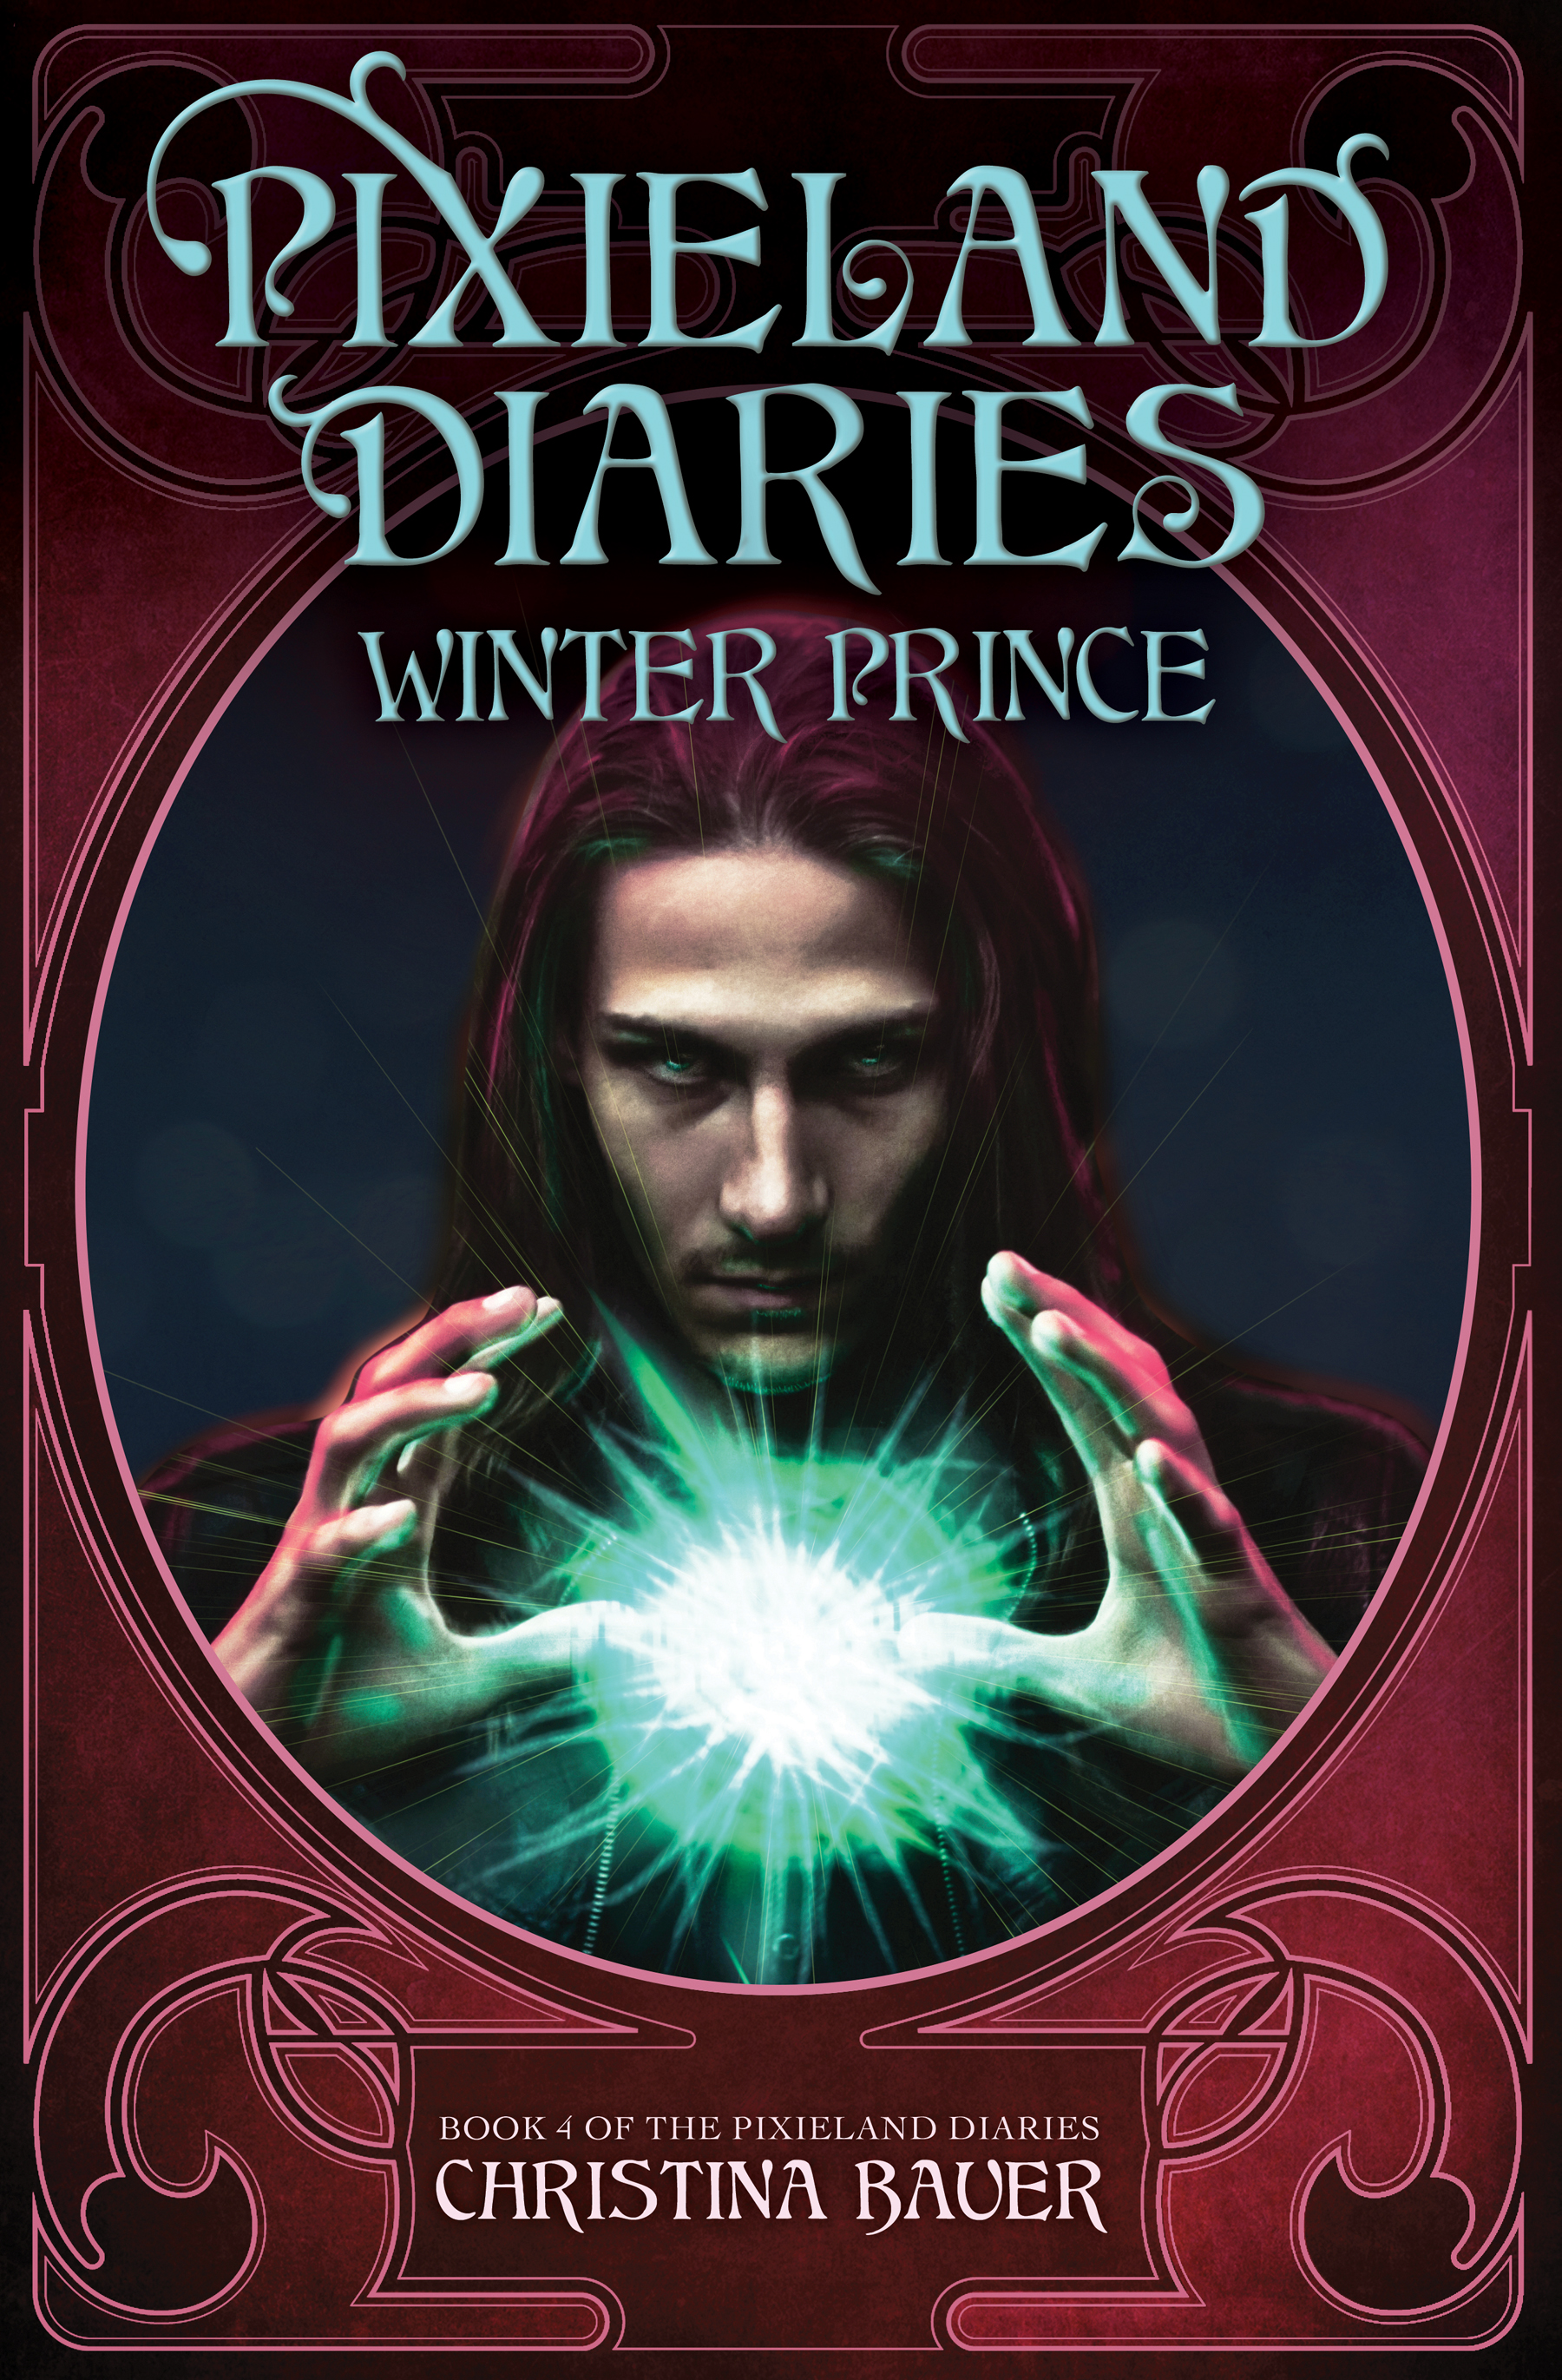 WINTER PRINCE (Book 4)